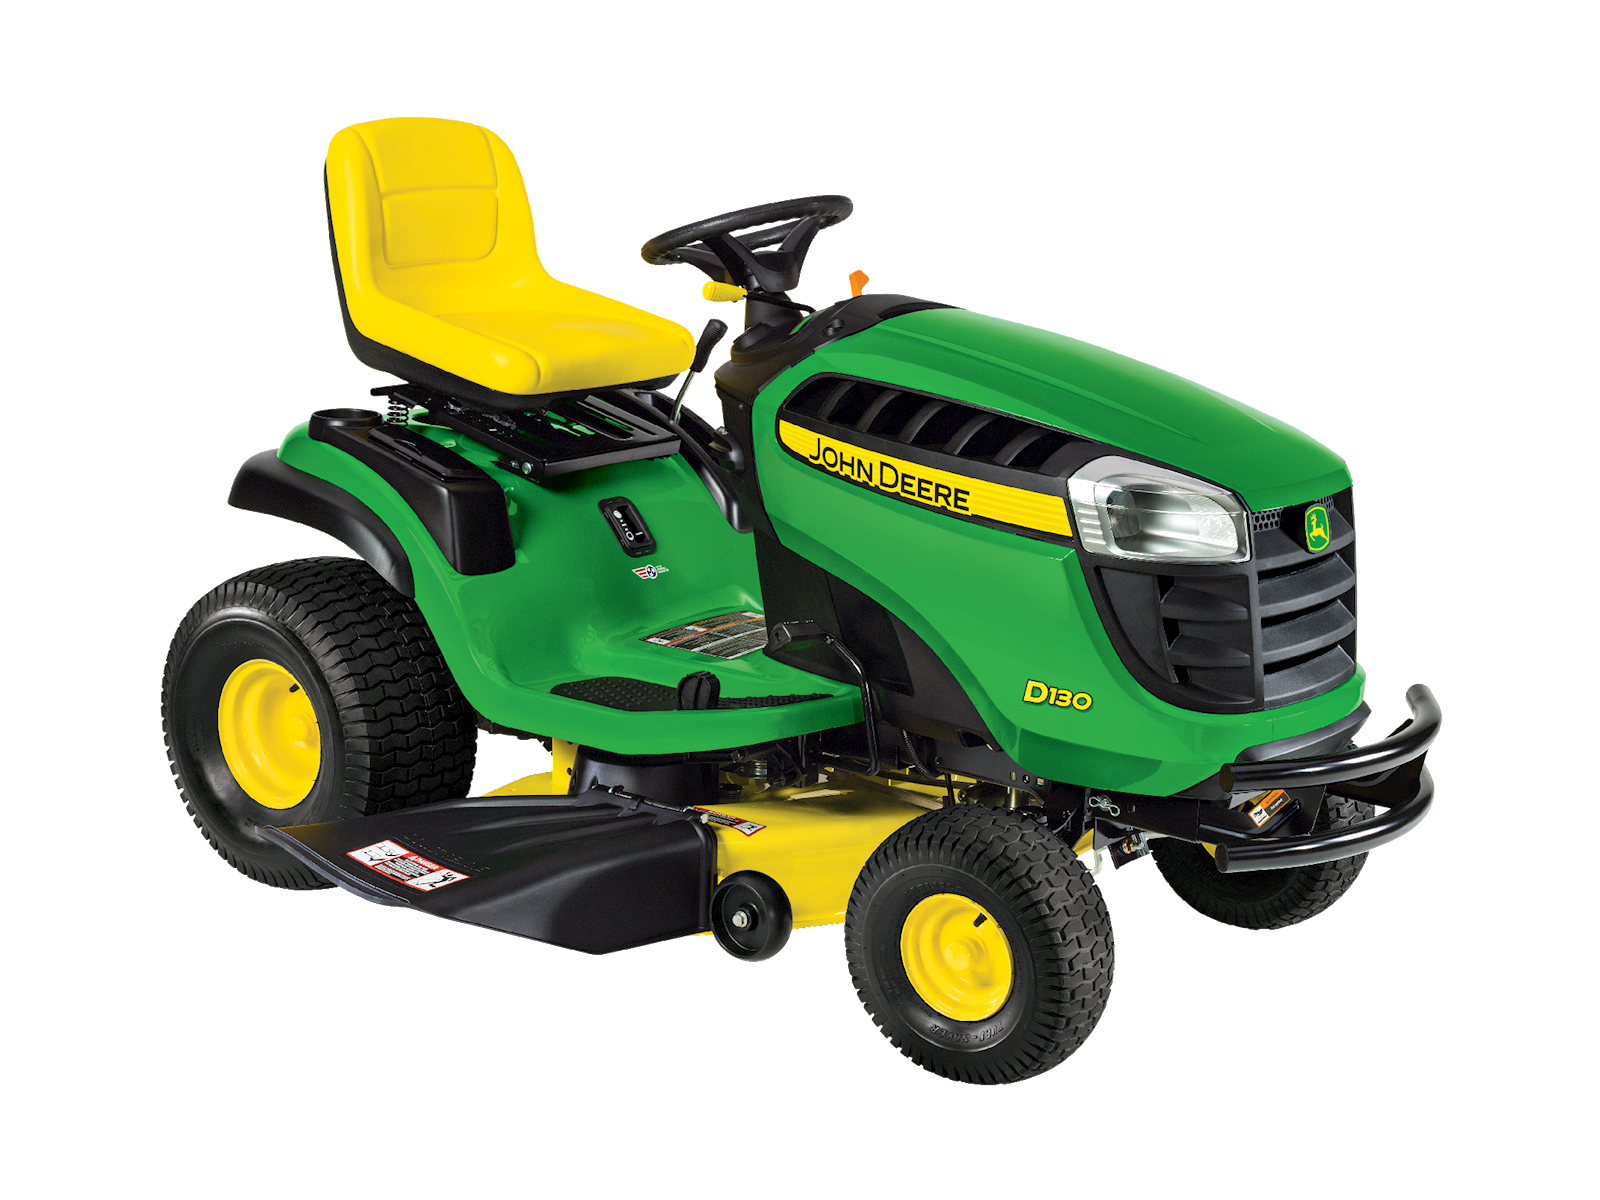 100 series lawn tractors